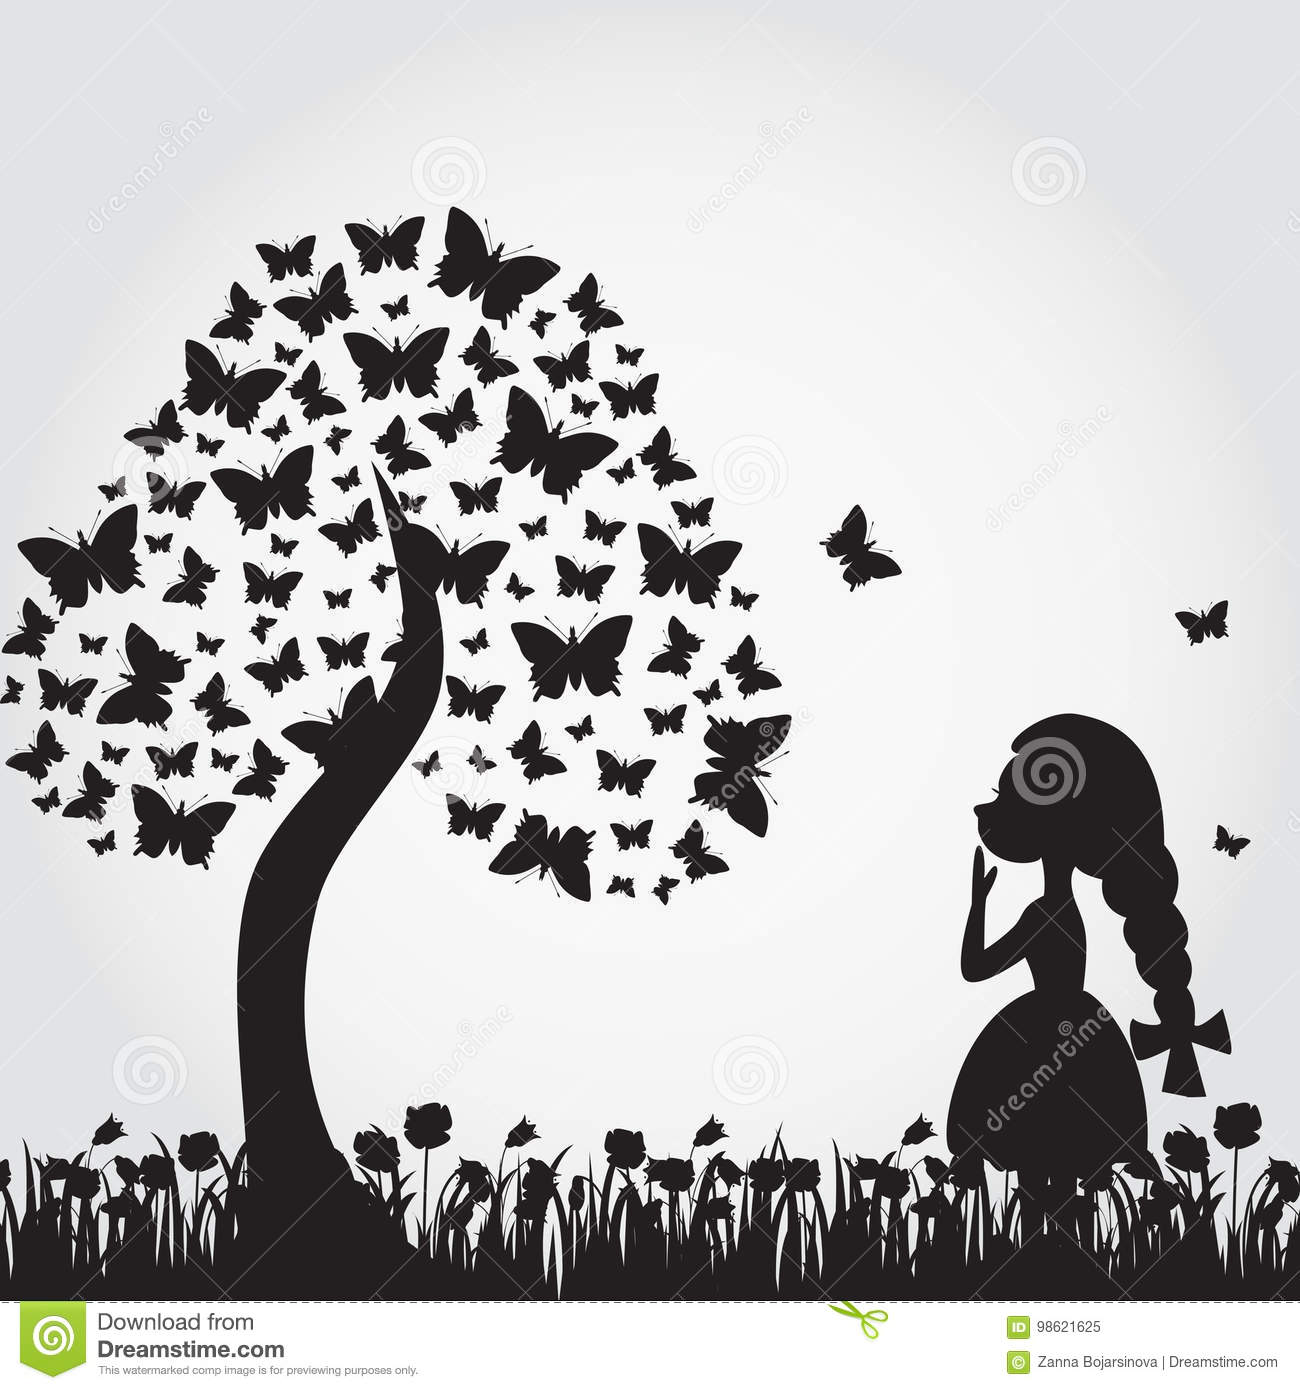 Silhouettes of miracle tree from butterflies and girl.